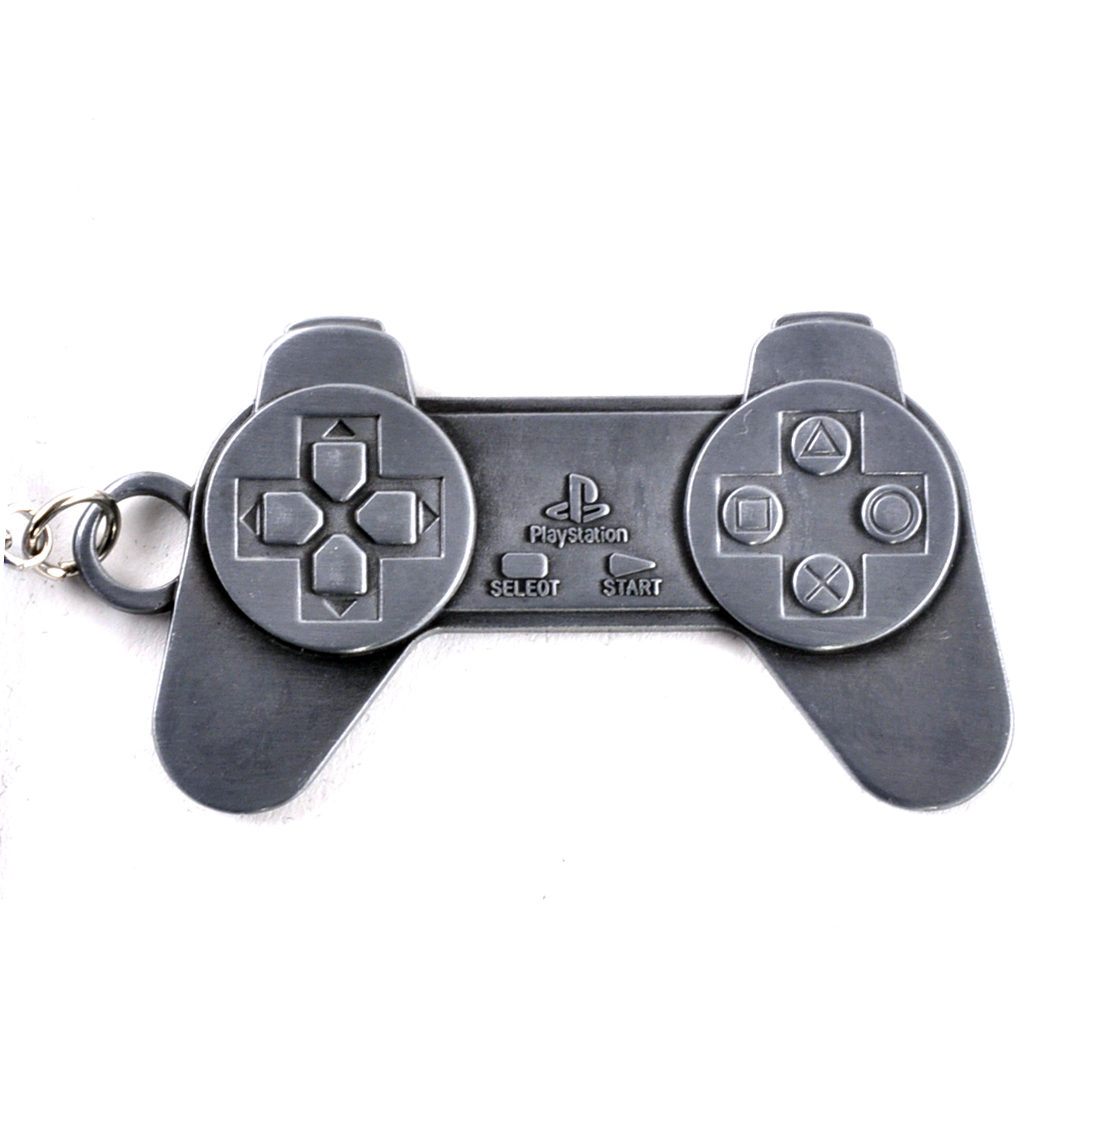 Playstion Key Ring